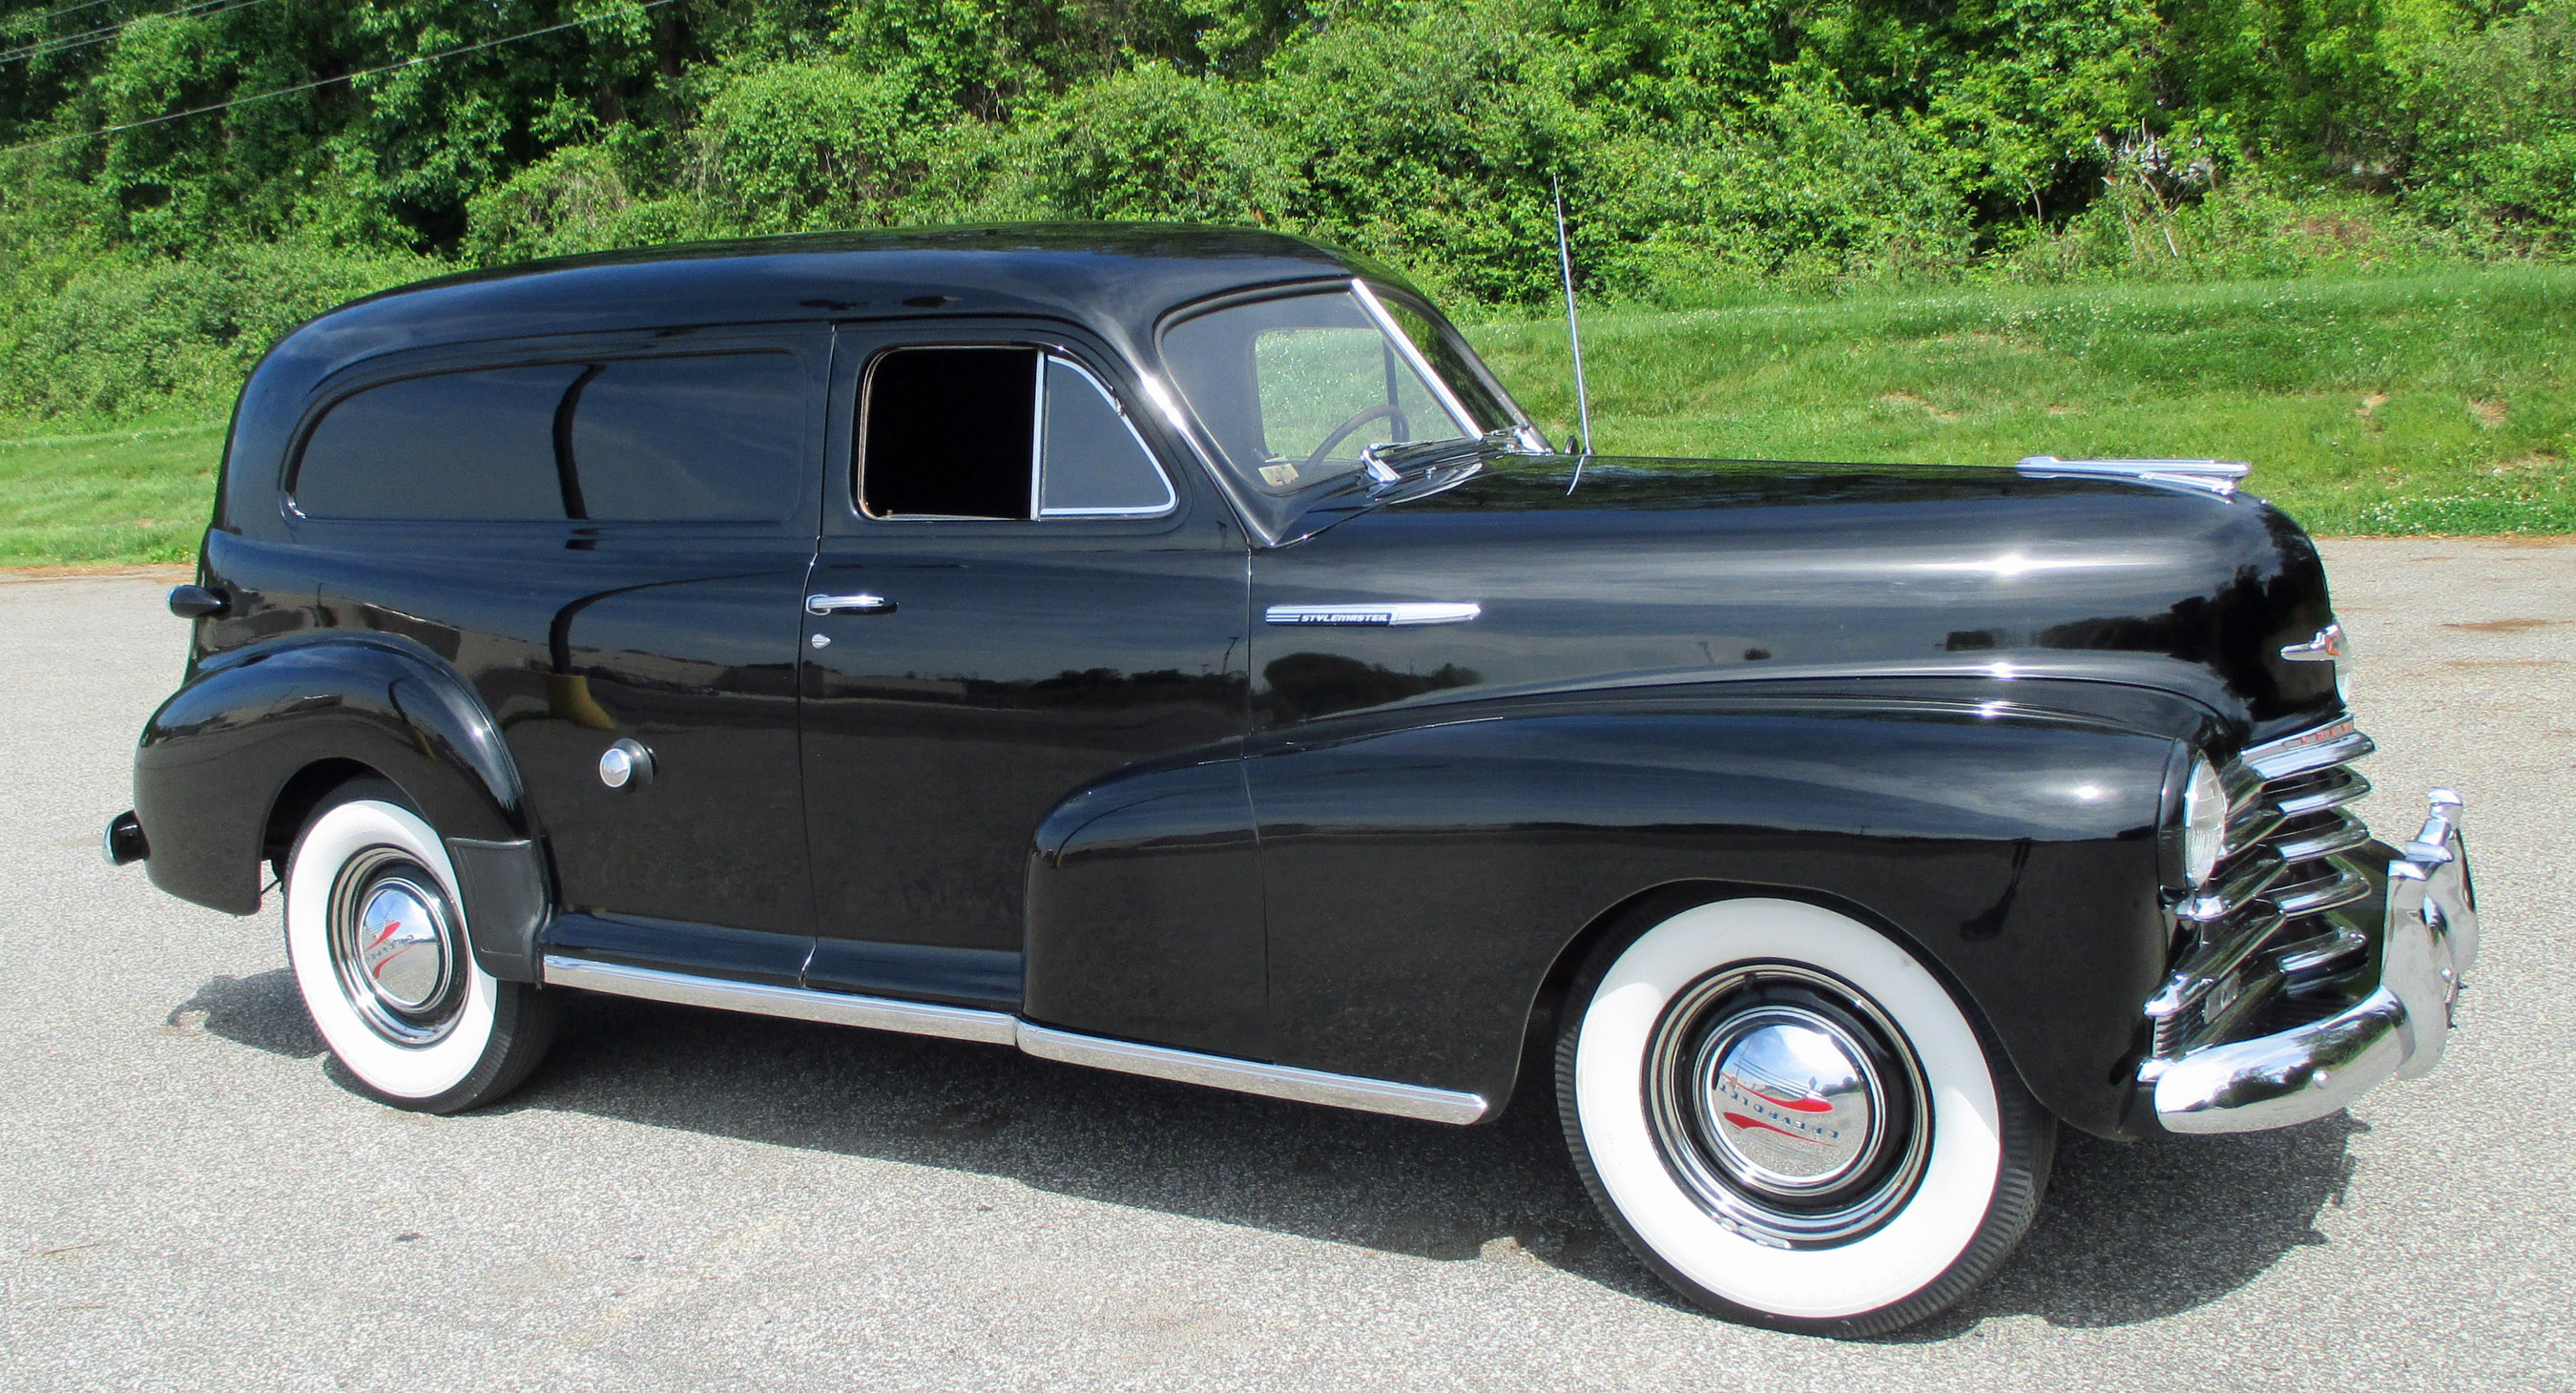 6.0 Chevy Specs >> 1947 Chevrolet Stylemaster | Connors Motorcar Company